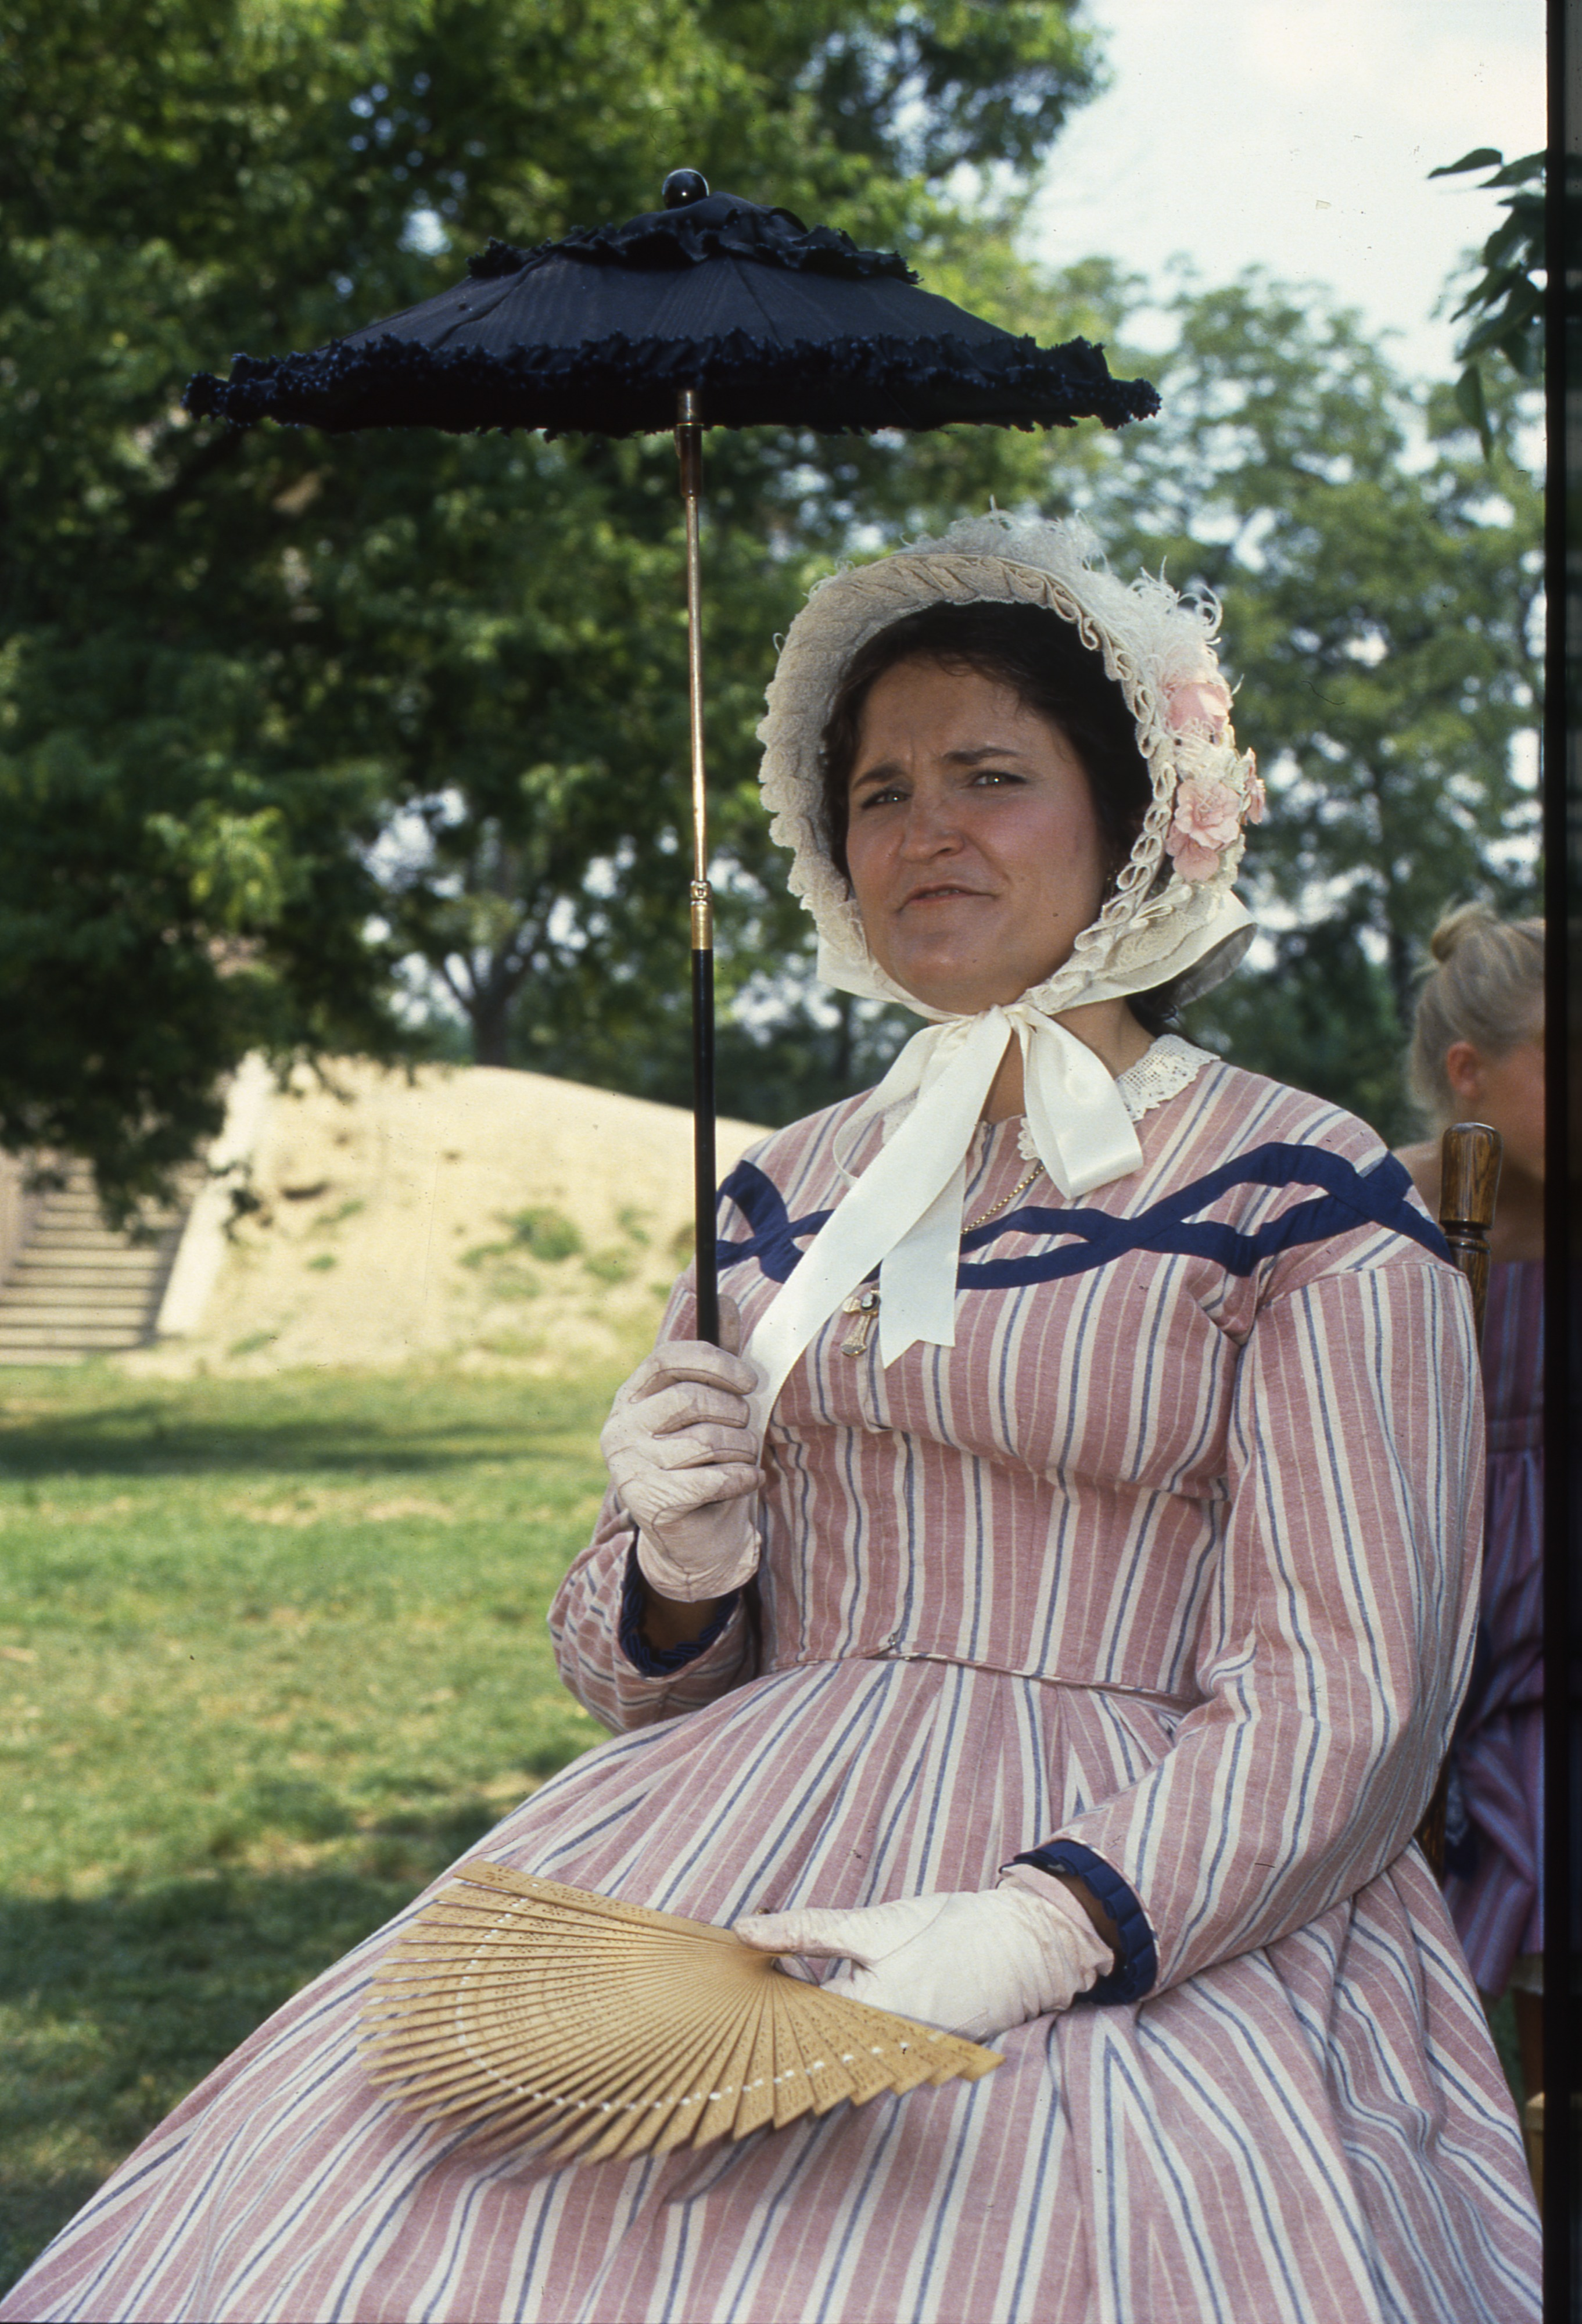 Civil War Era Re-enactor At Cobblestone Farm, July 28, 1990 image